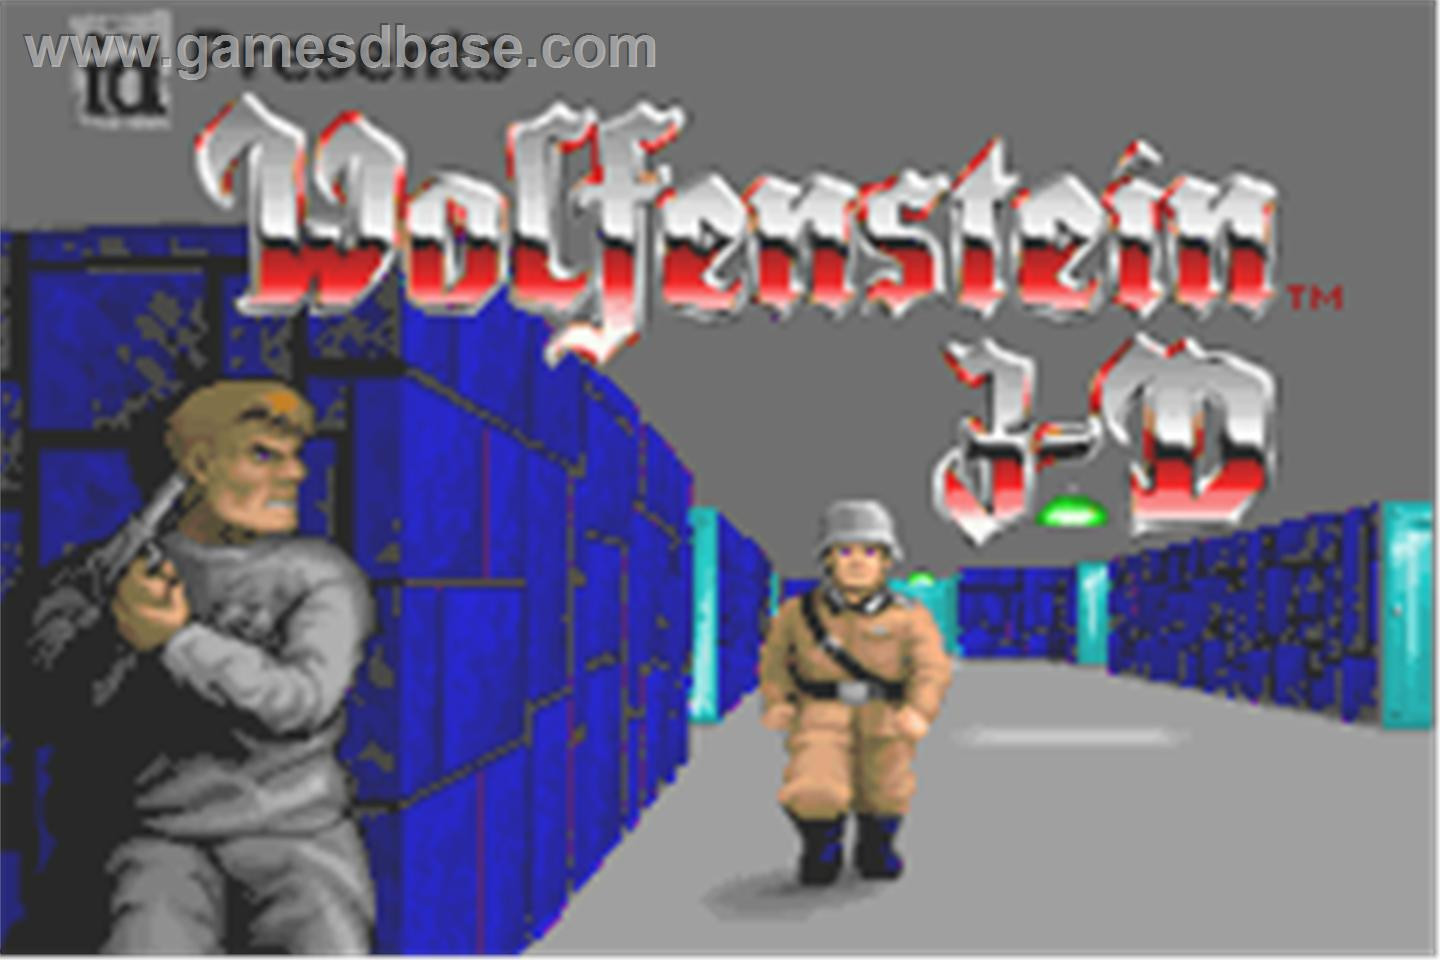 1329814594_wolfenstein3d-2002-bamentertainment.jpg